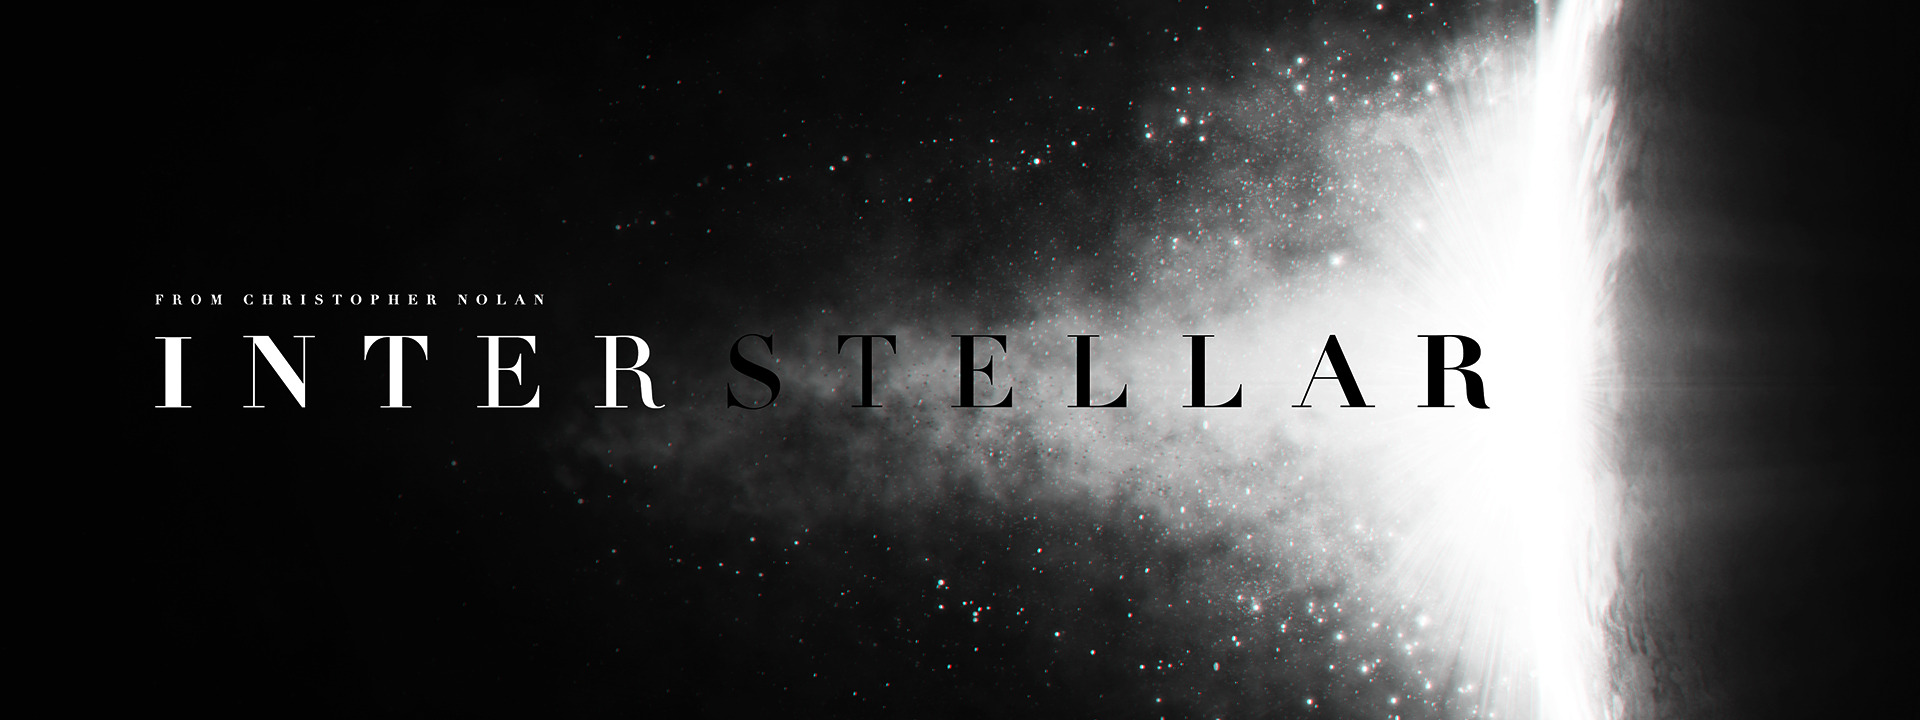 Interstellar is a Must See Movie